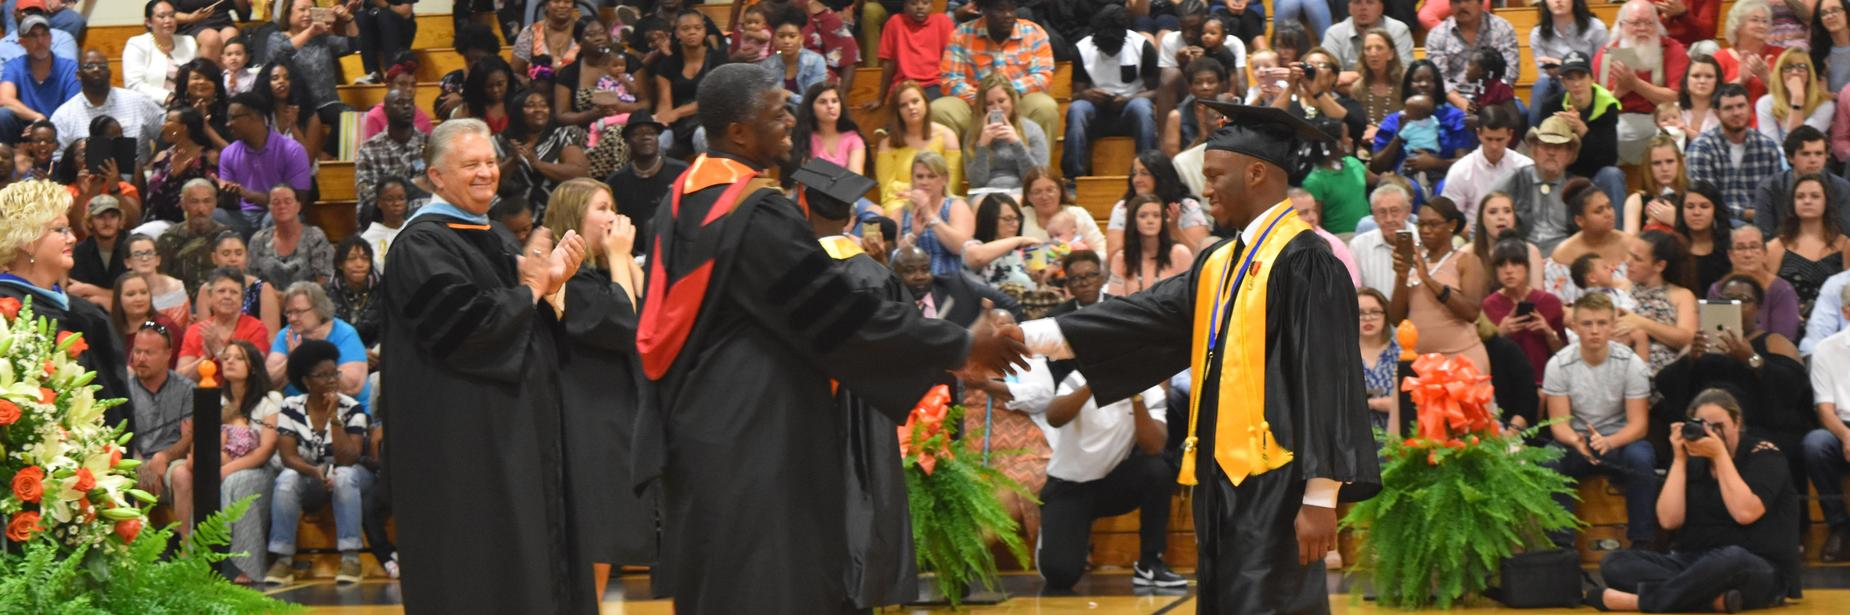 ghs student receiving diploma at graduation